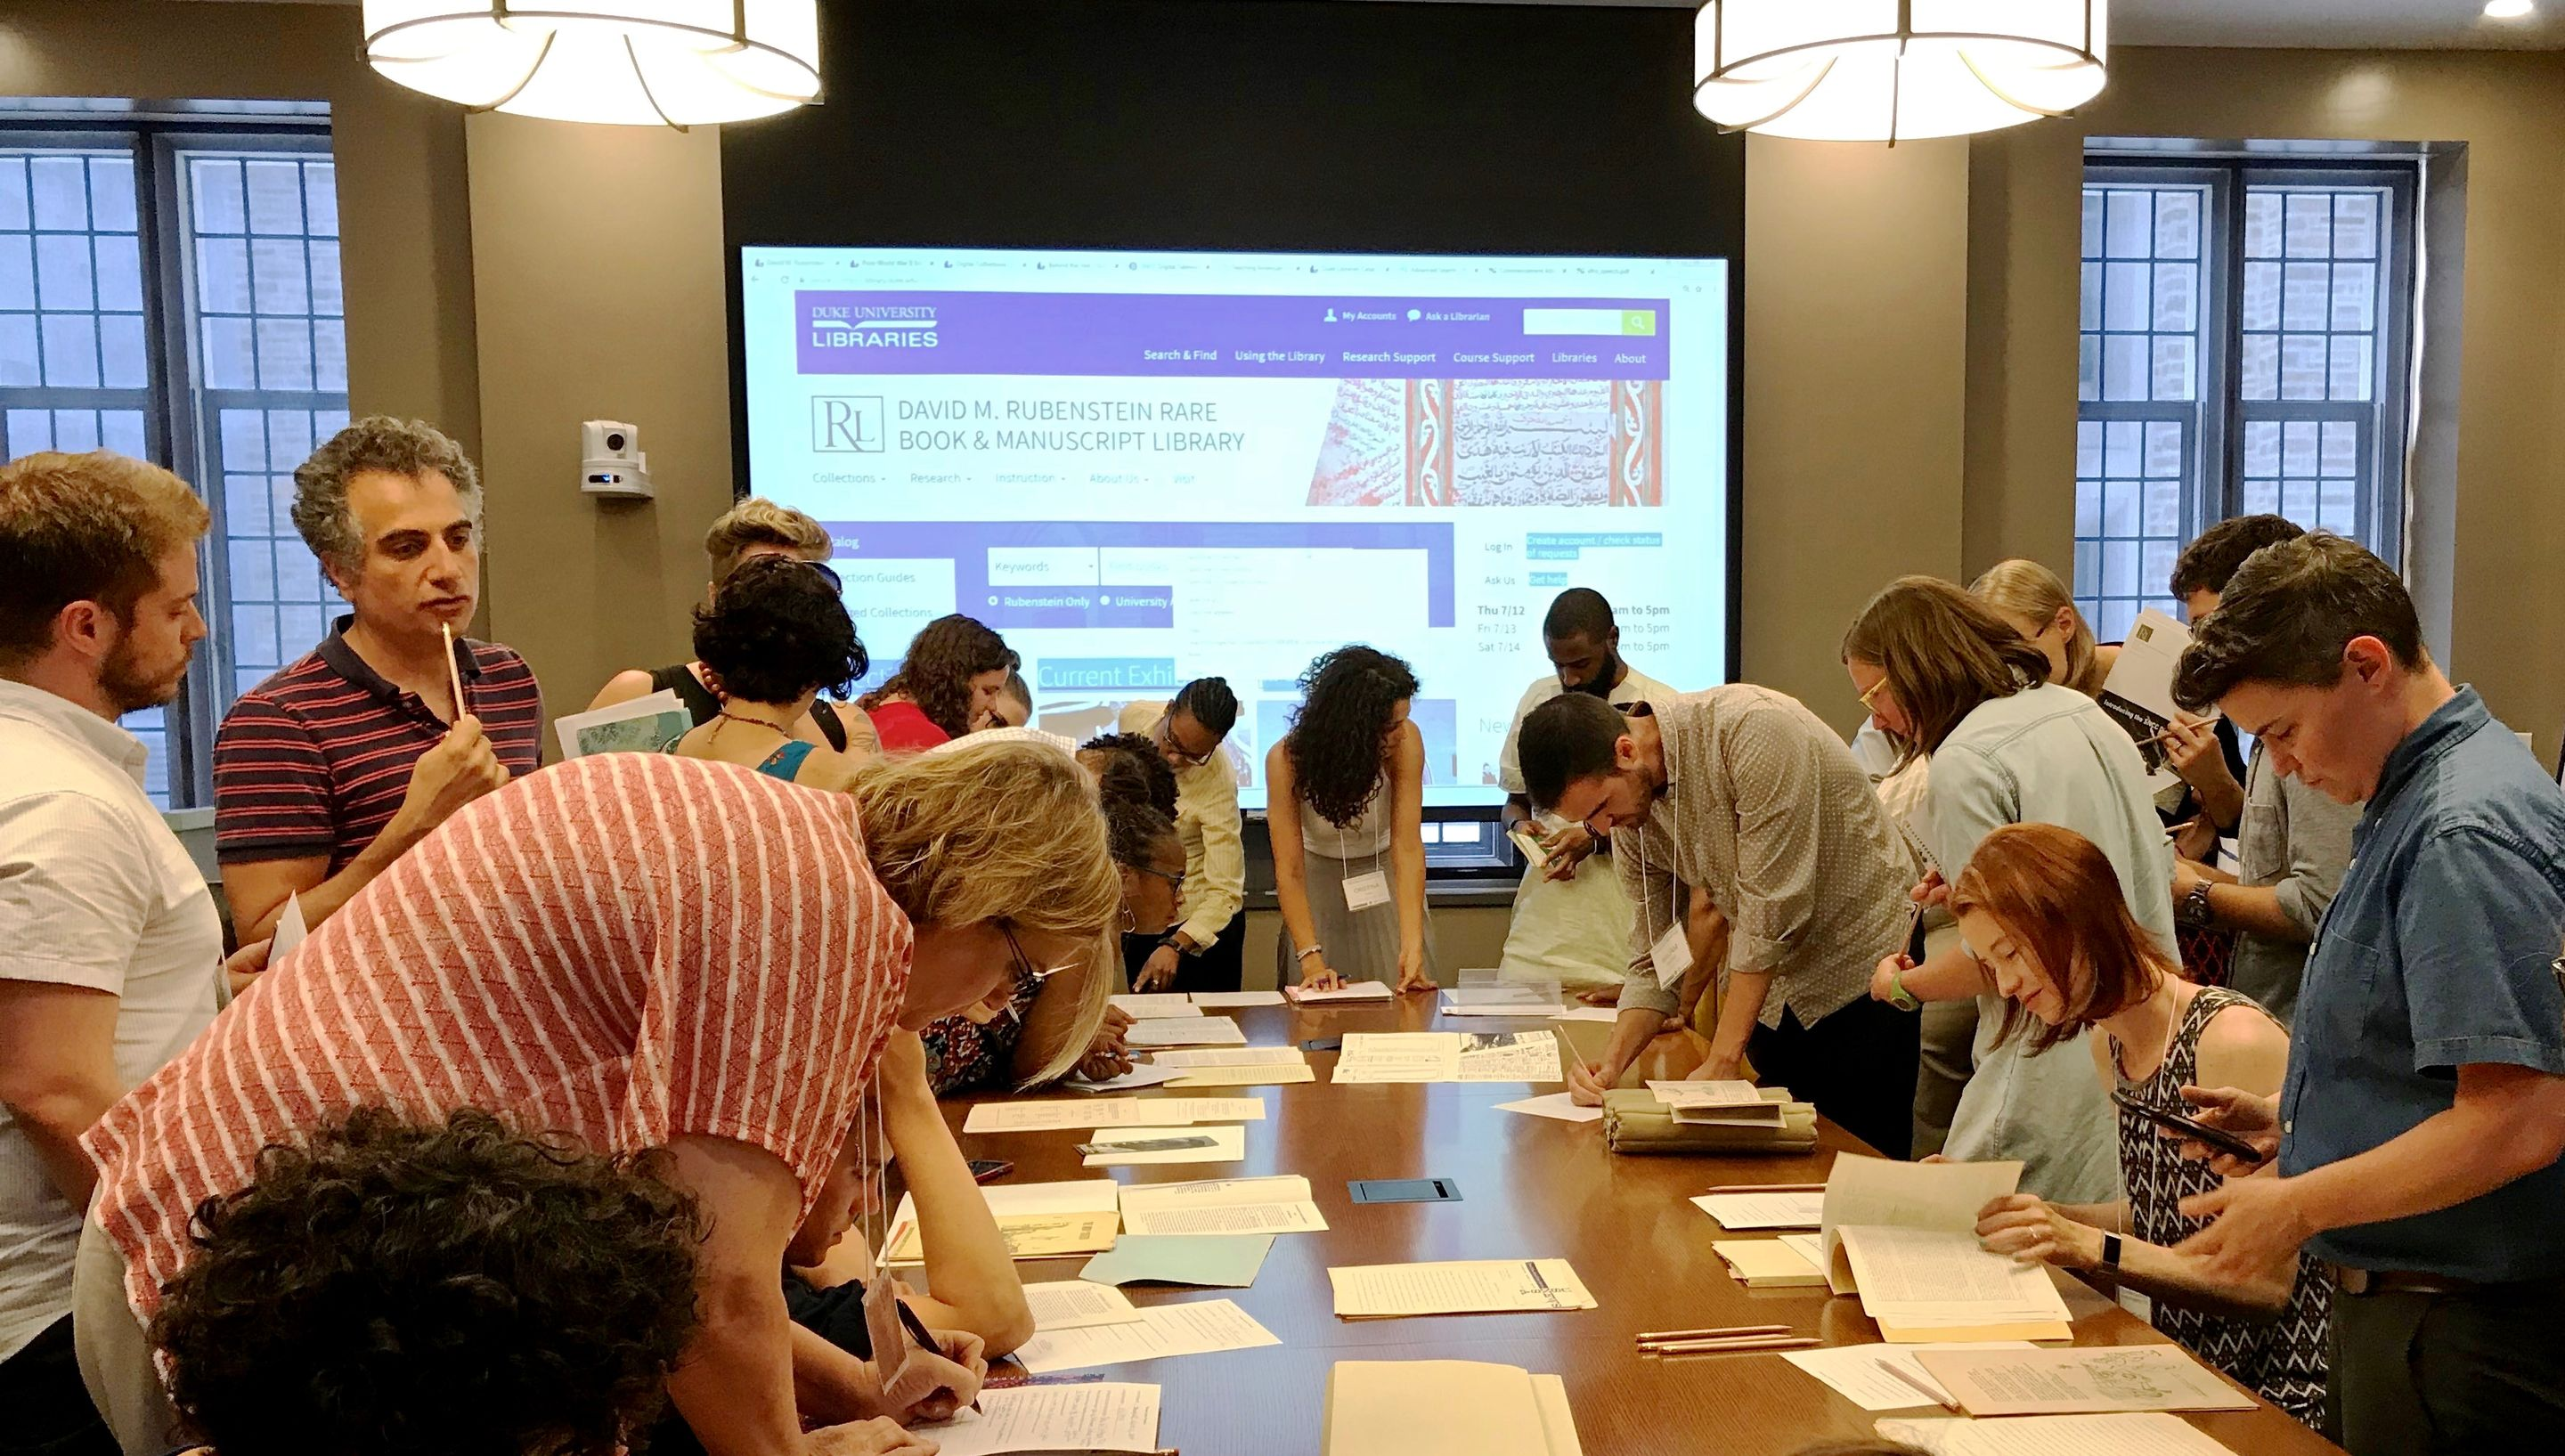 Teachers at the summer institute explore primary documents at Duke University's David M. Rubenstein Rare Book and Manuscript Library.